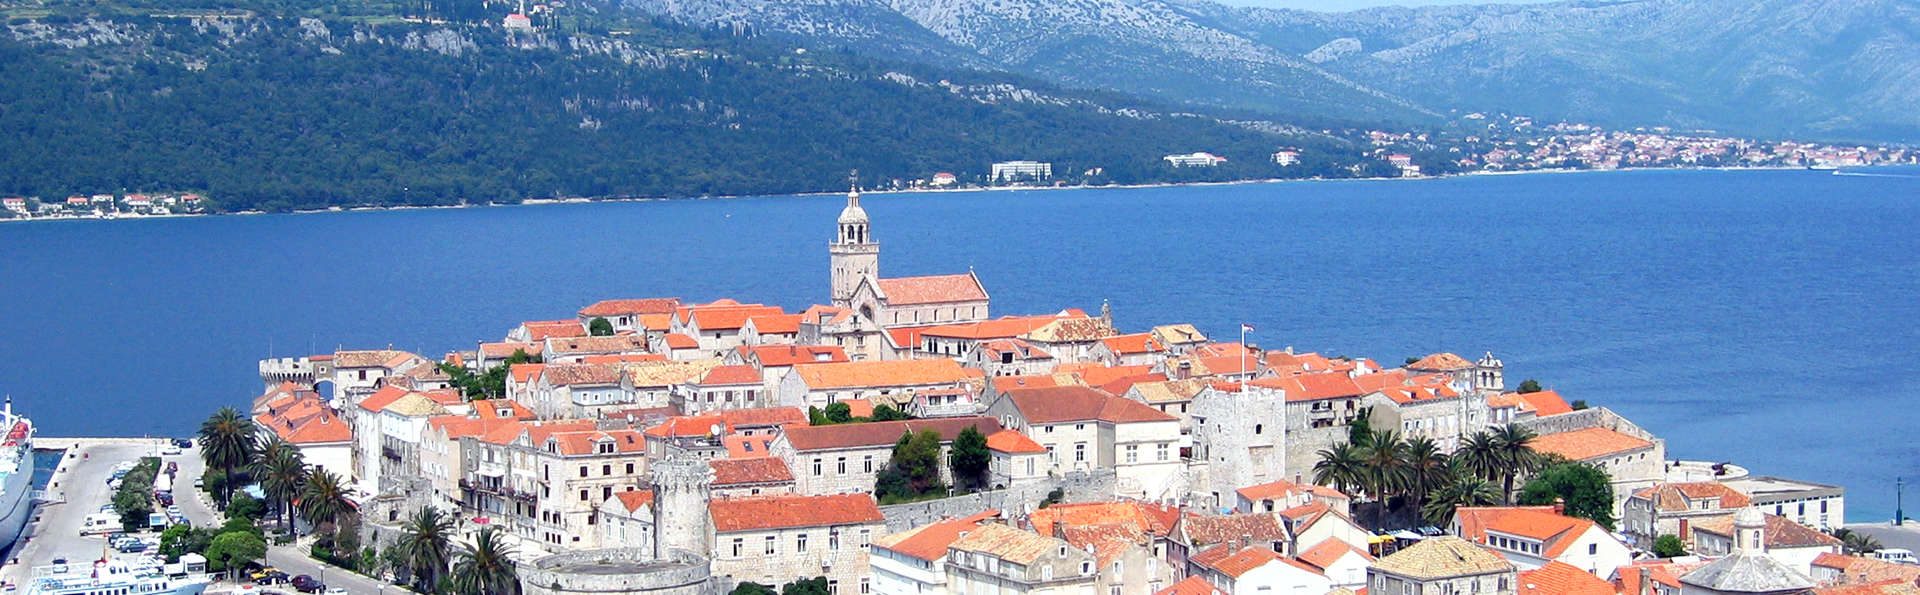 Port 9 Apartments - edit_Korcula_City.jpg